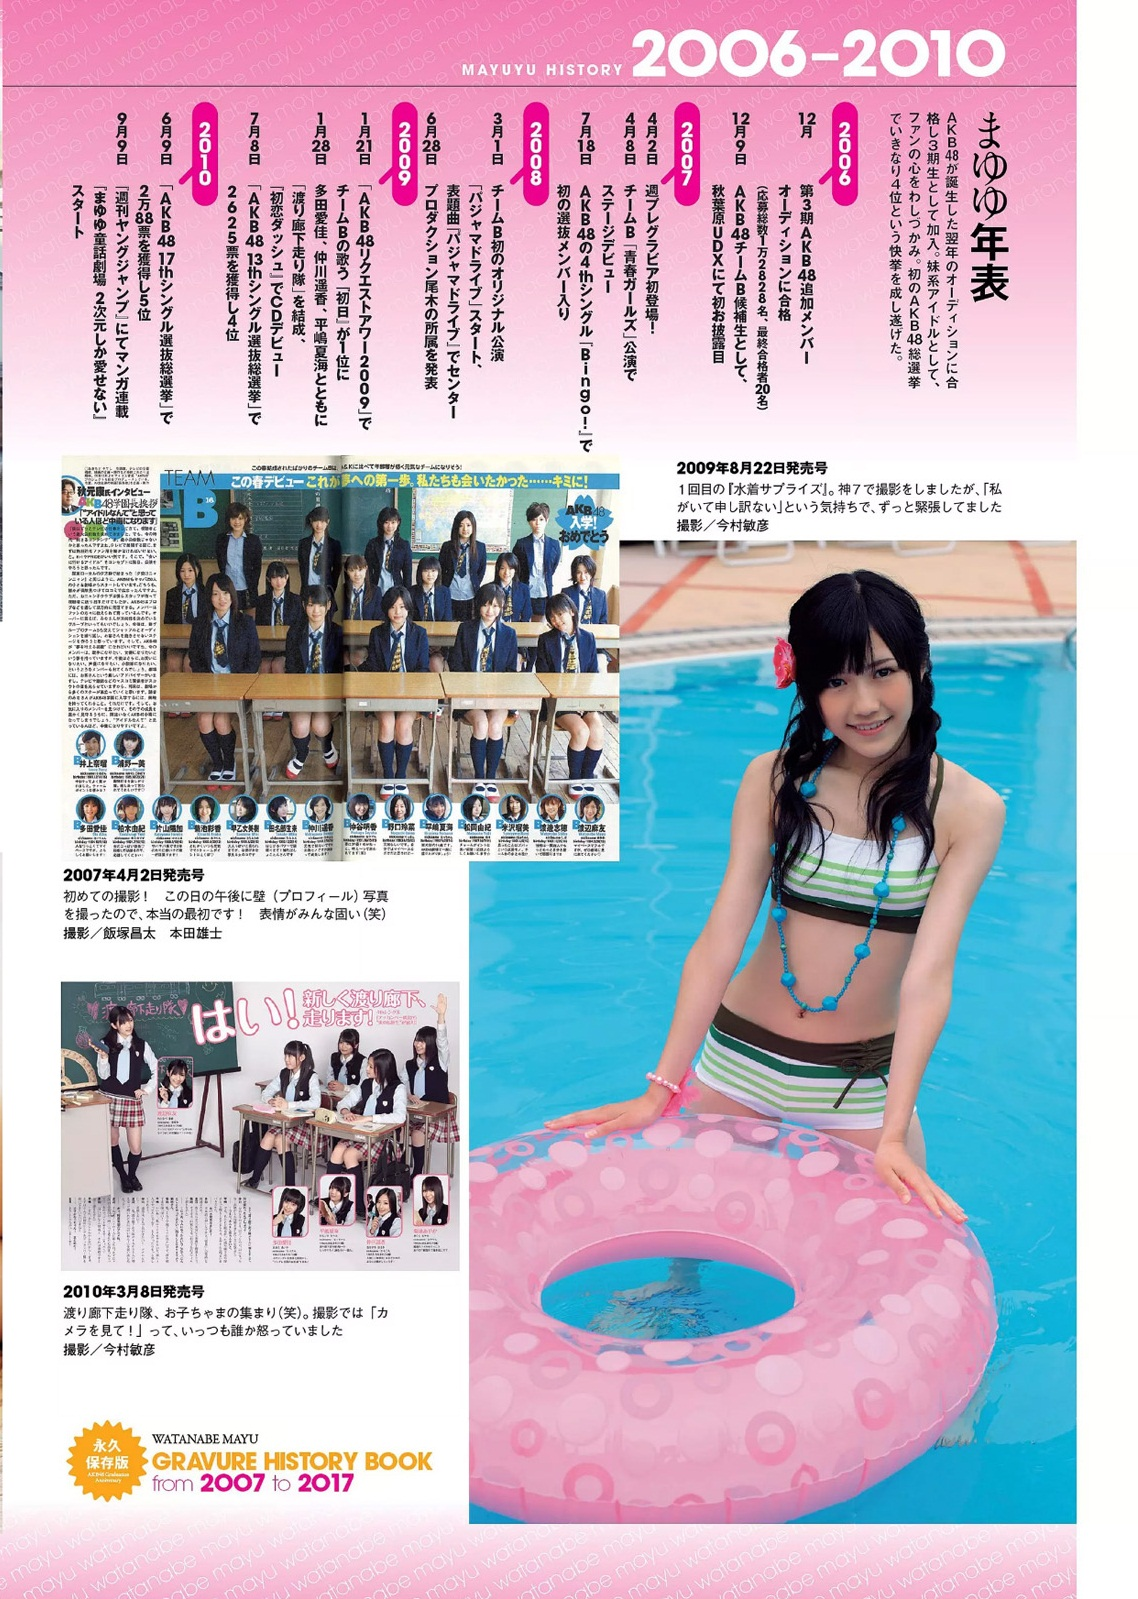 AKB48 Watanabe Mayu 渡辺麻友 Gravure History Book from 2007 to 2017